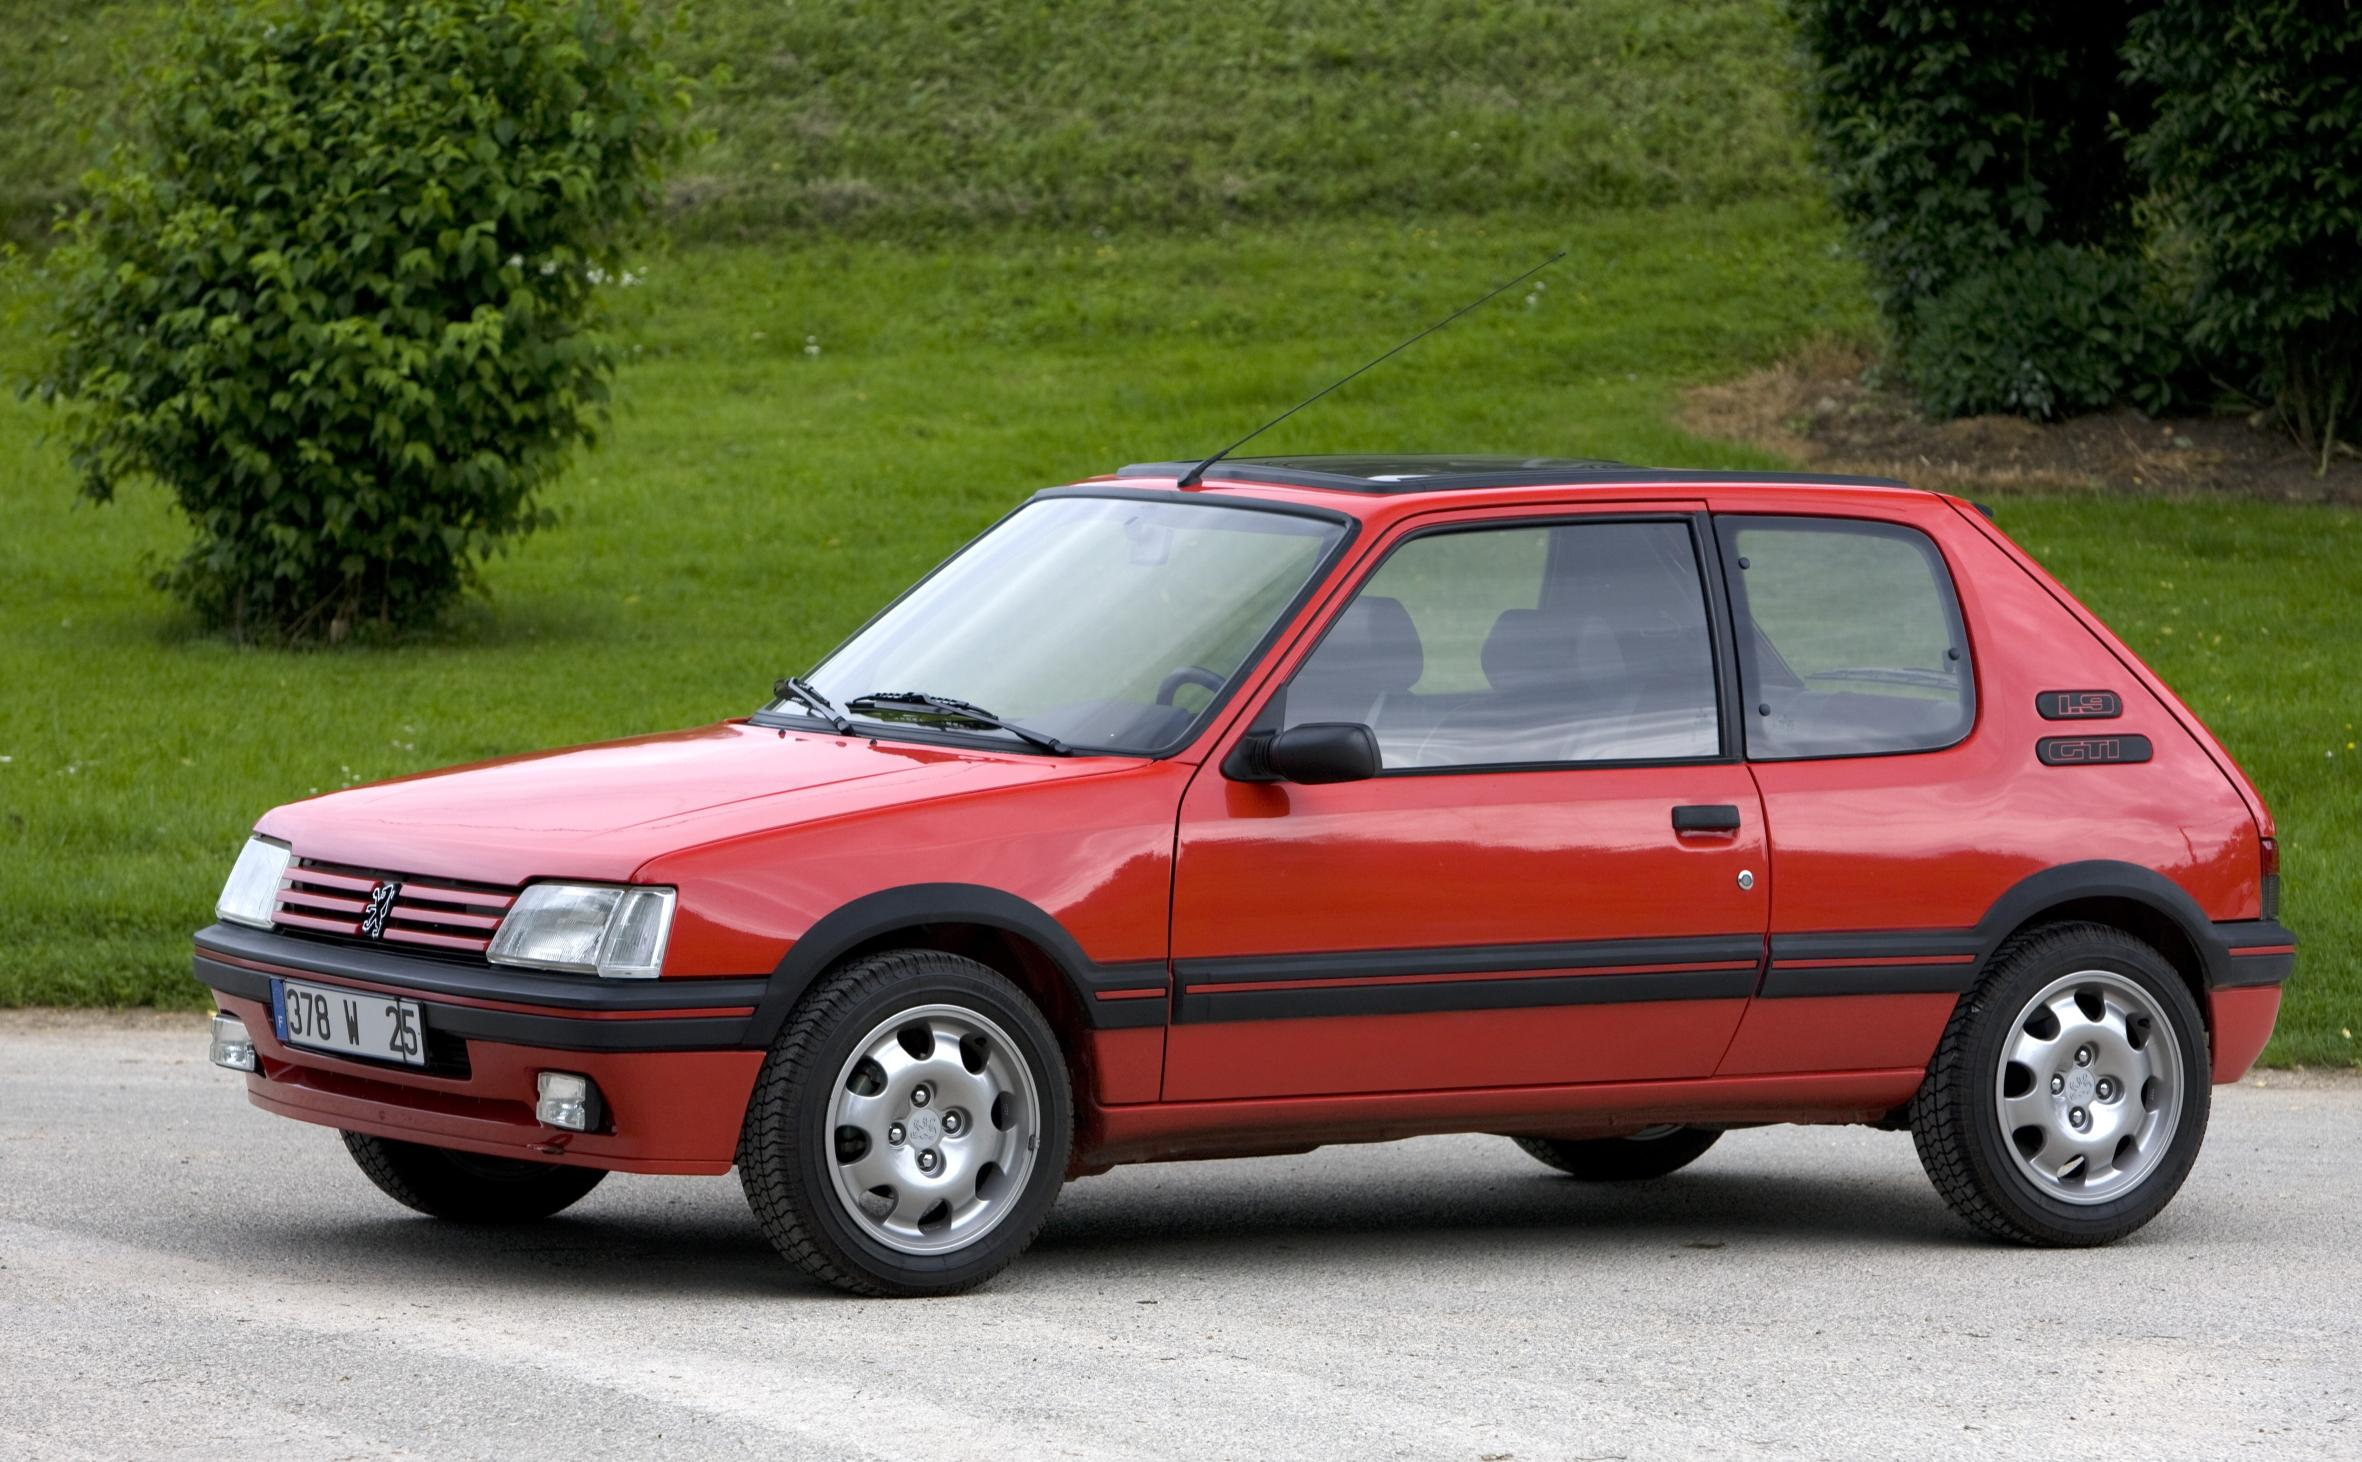 Peugeot 205GTI side view red